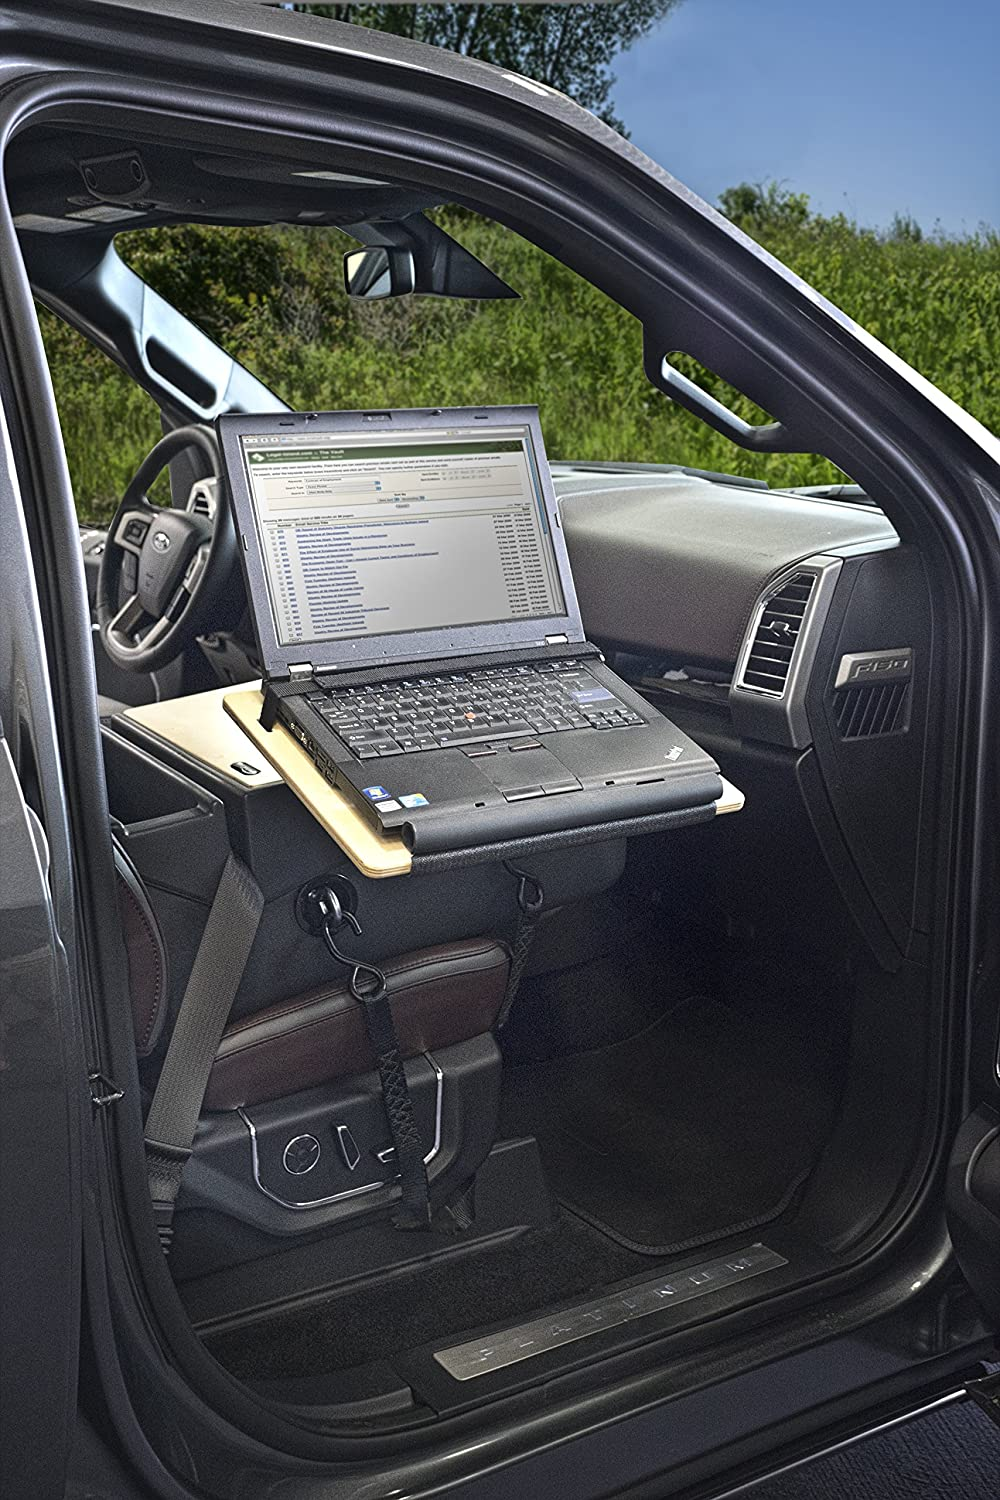 AutoExec AUE15071 Reach Front Seat Car Desk Urban Camouflage with Built-in Power Inverter